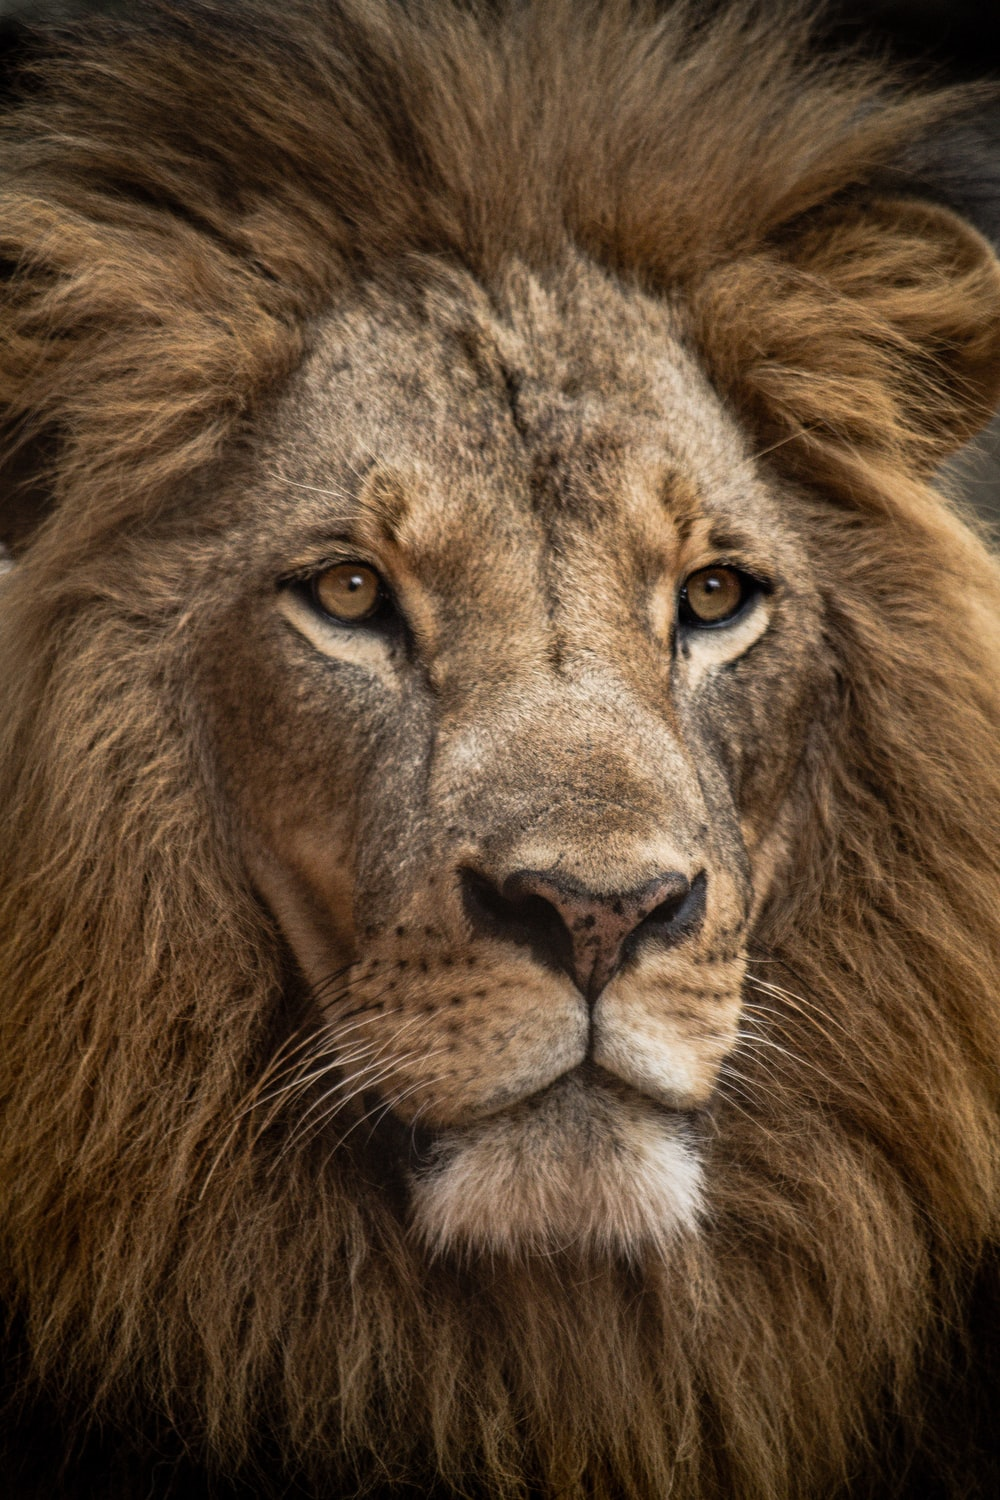 lion in close up shot